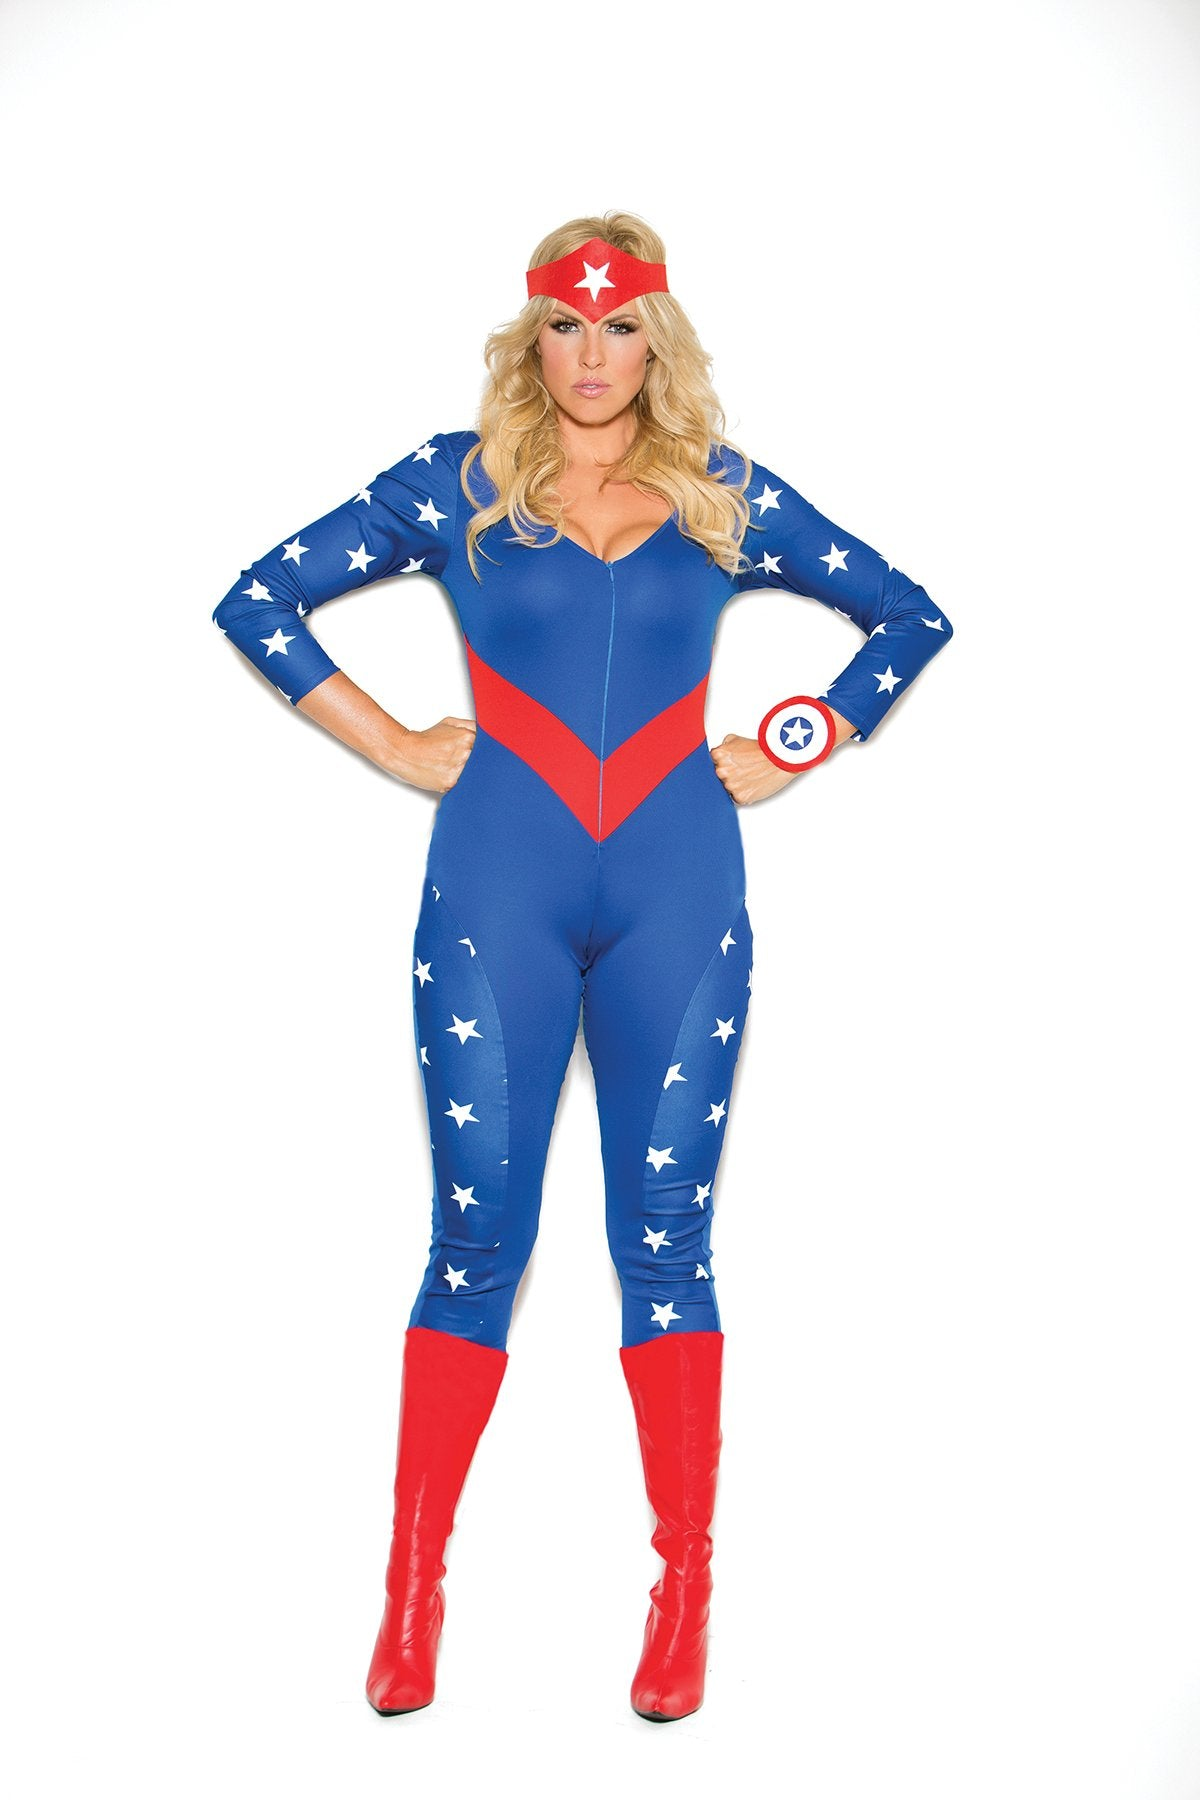 American Hero Superhero Costume costumes size smallcolor blueNakees